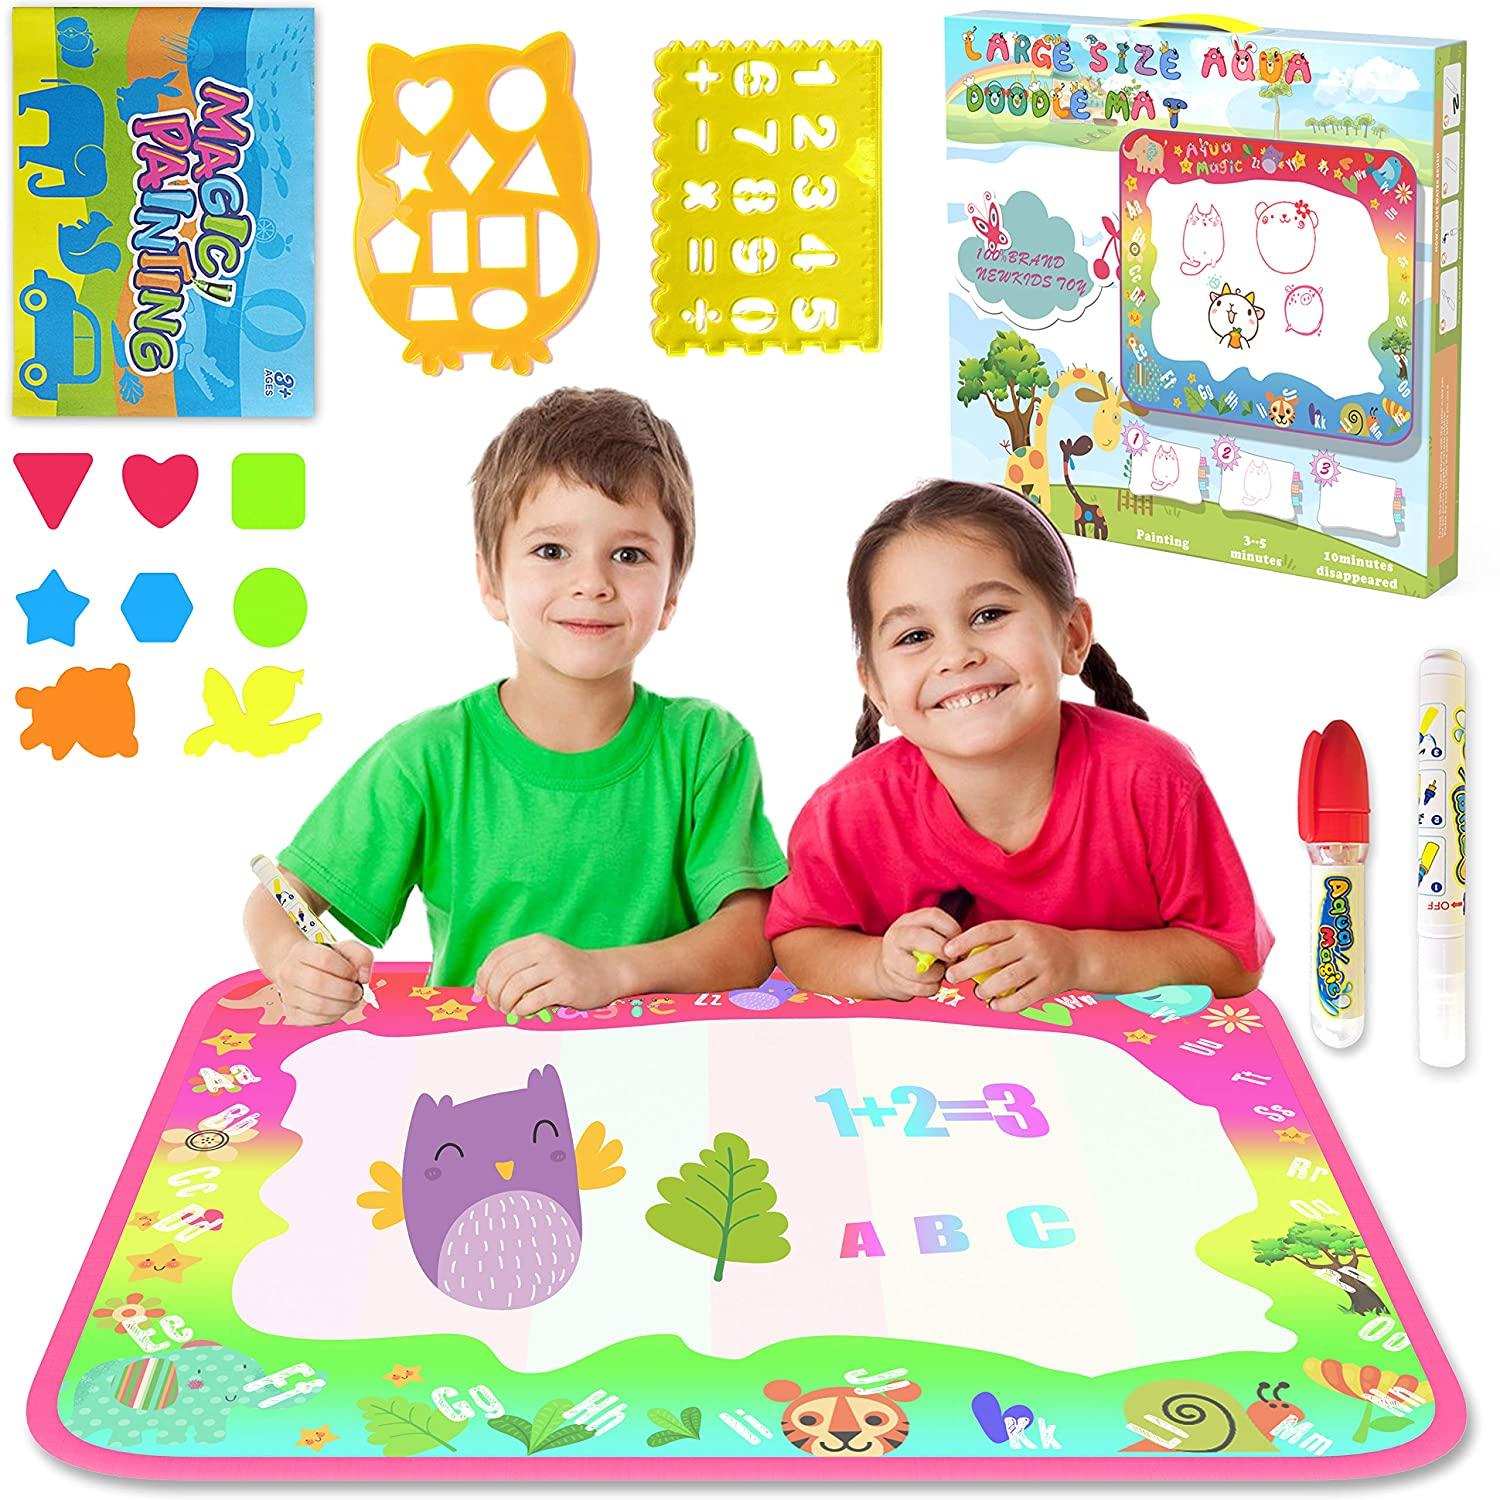 Water Doodle Mat, Aqua Magic Mat Water Drawing Mat Toddlers Painting Board Writing Pad Educational Learning Toy in 6 Colors with 2 Magic Pens for Boys Girls Age 2 3 4 5 6+ Years Old, 34 X 22.5 34 X 22.5 Aptoyu